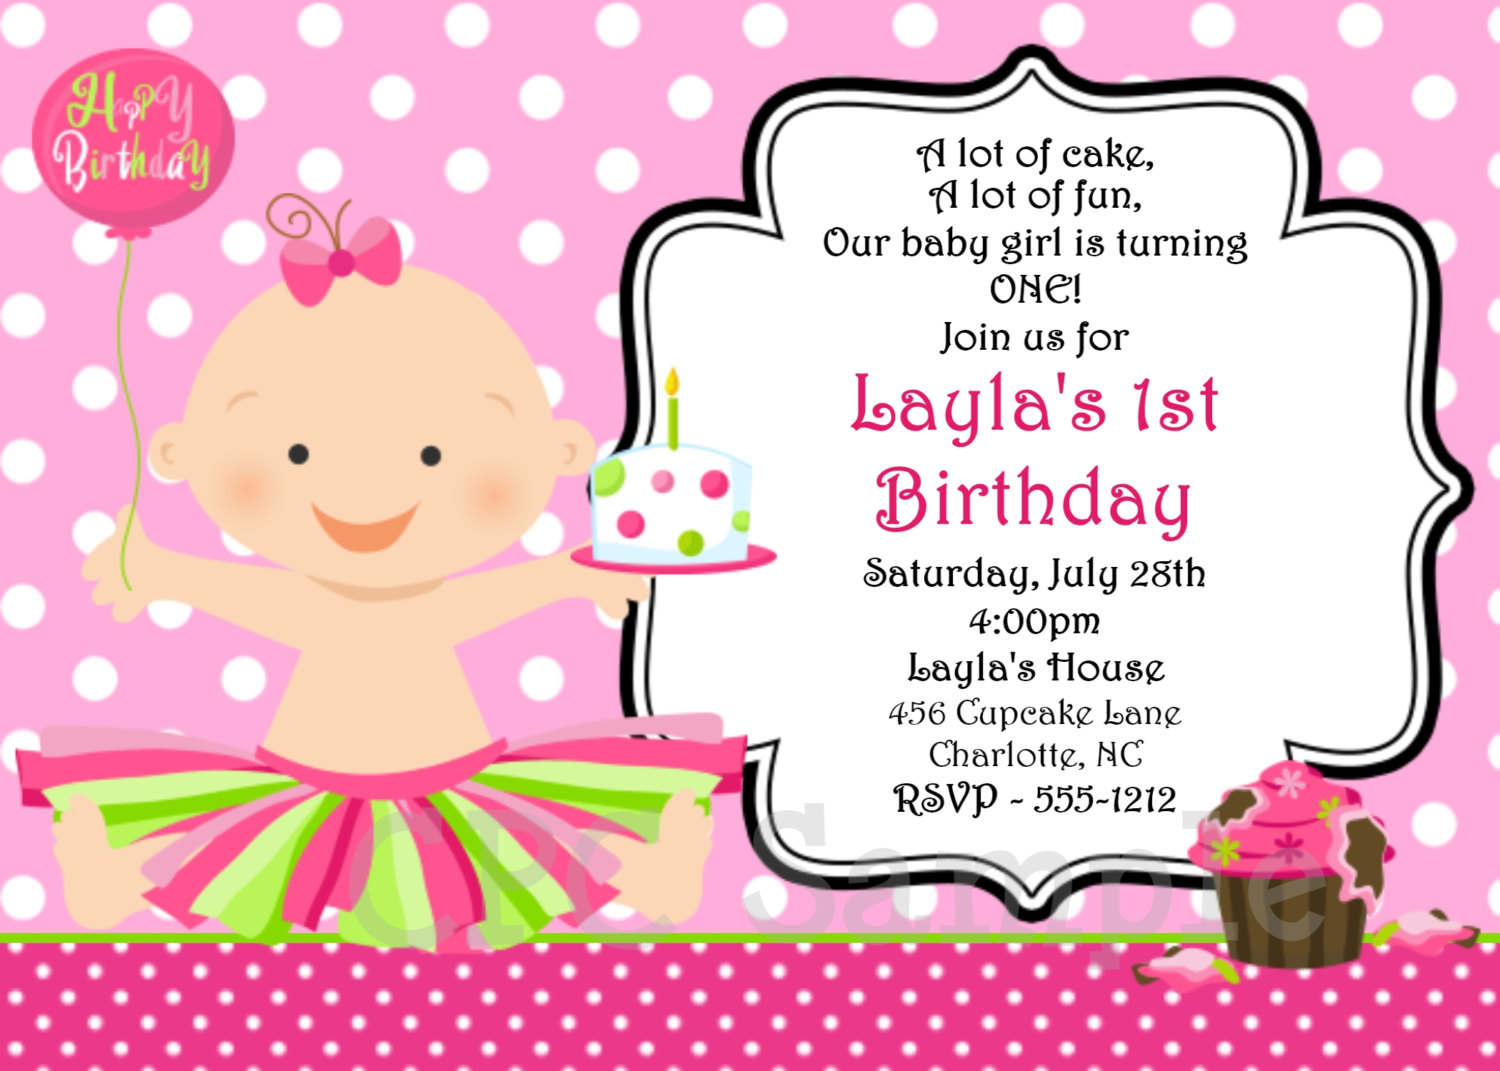 birthday invitation card sample printable ; simple-maker-birthday-invitation-card-template-perfect-ideas-pink-color-background-polka-dot-whit-baby-clipart-event-celebrating